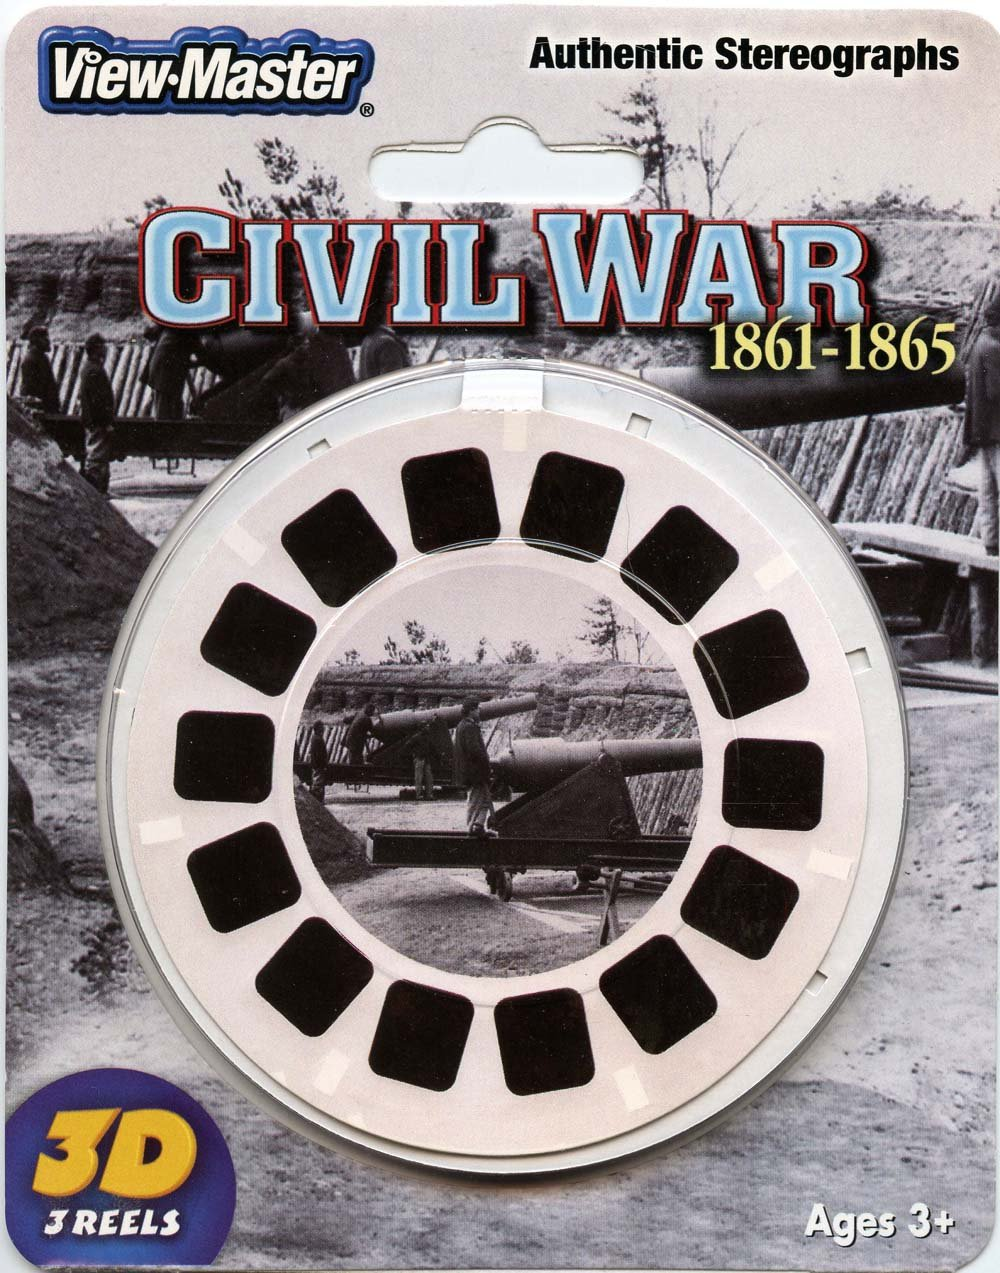 ViewMaster -The Civil War - Authentic Stereographs 1861-1865 - 3 Reels on Card- NEW by 3Dstereo ViewMaster (Image #1)